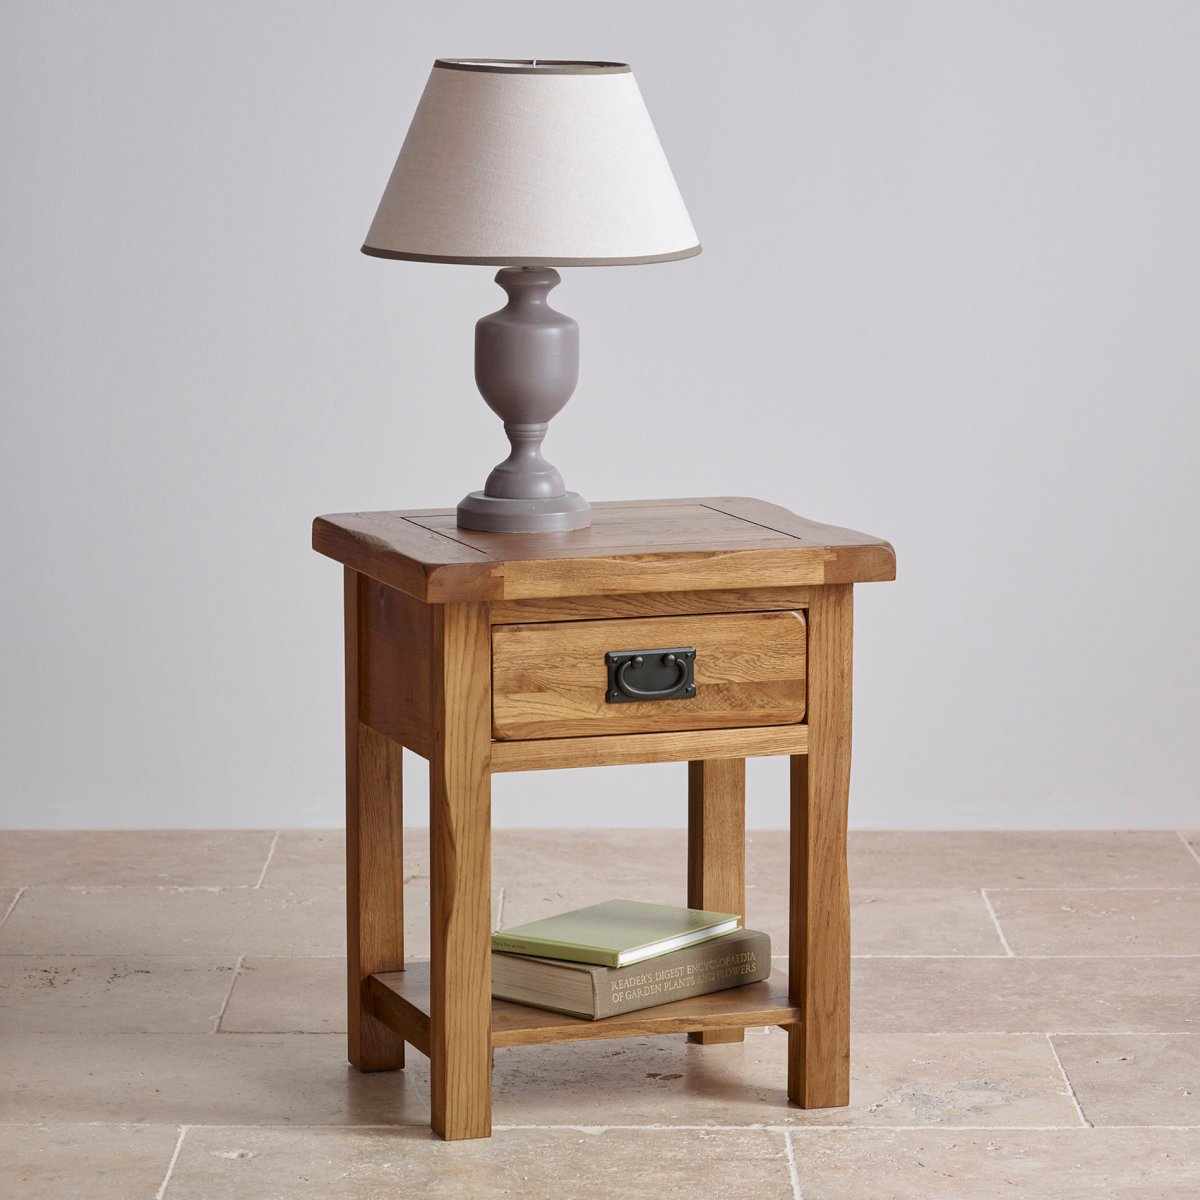 Original Rustic Lamp Table In Solid Oak Oak Furniture Land